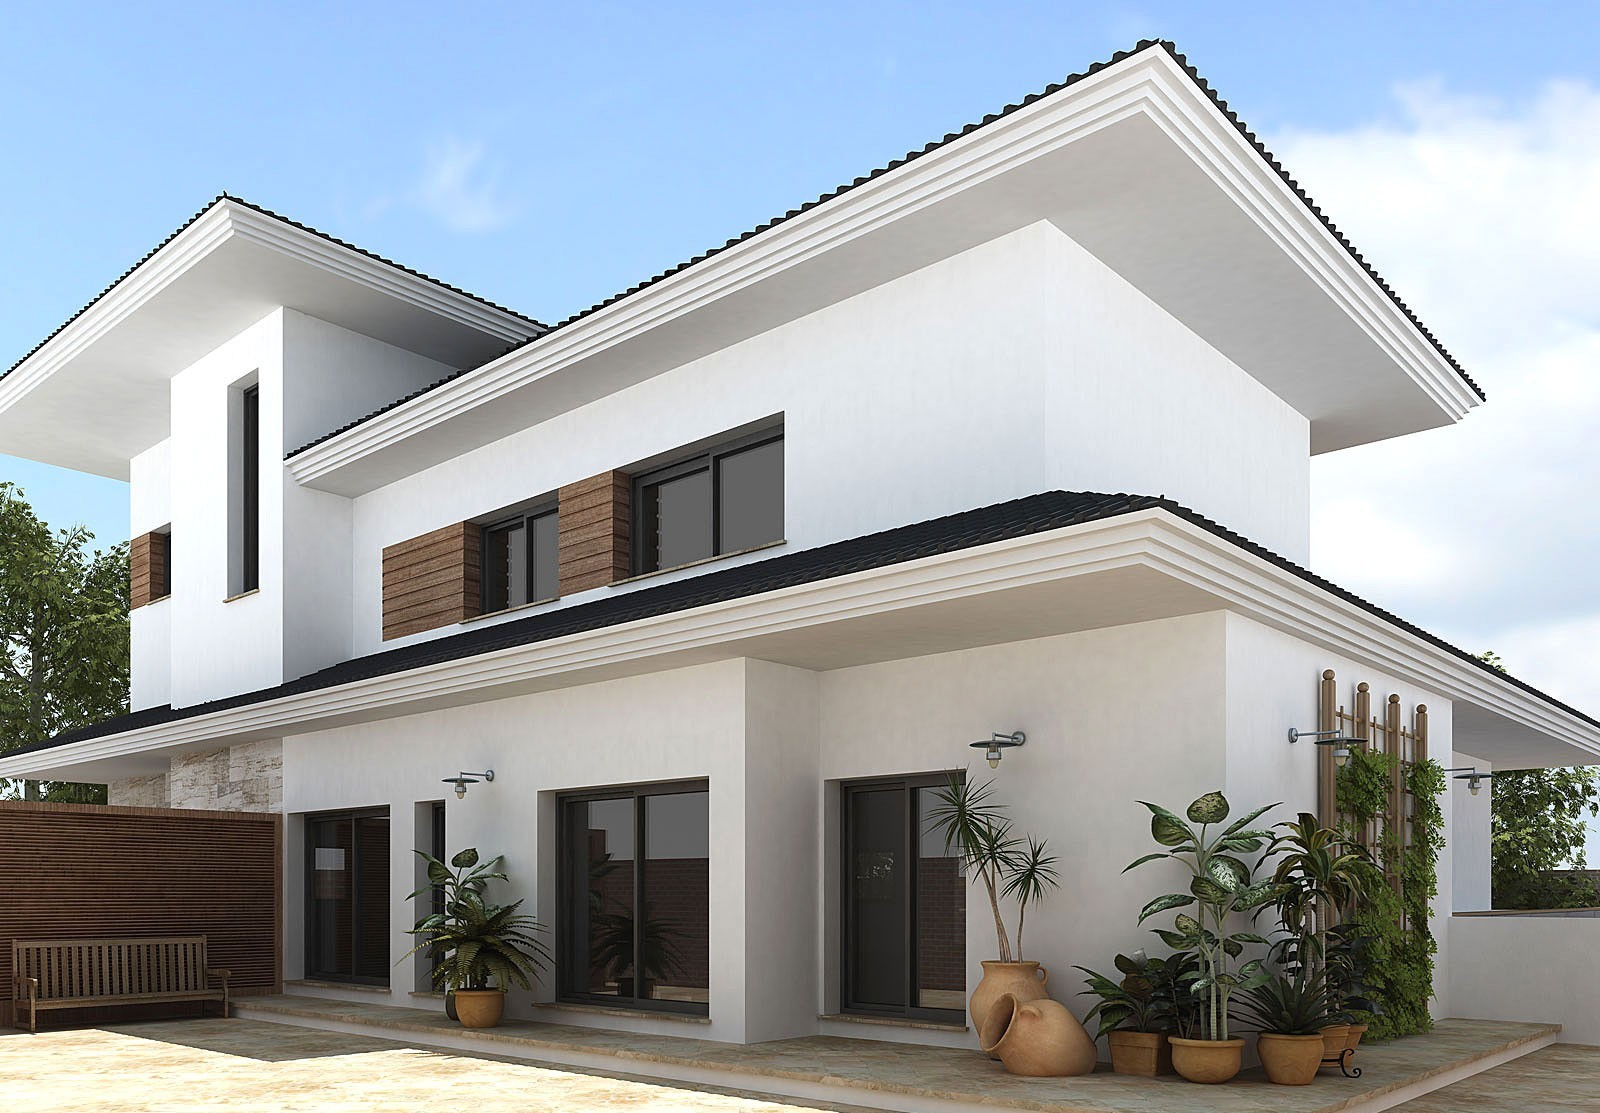 The High Cost of House Design | Festipoaliteraria Home Resource Guide